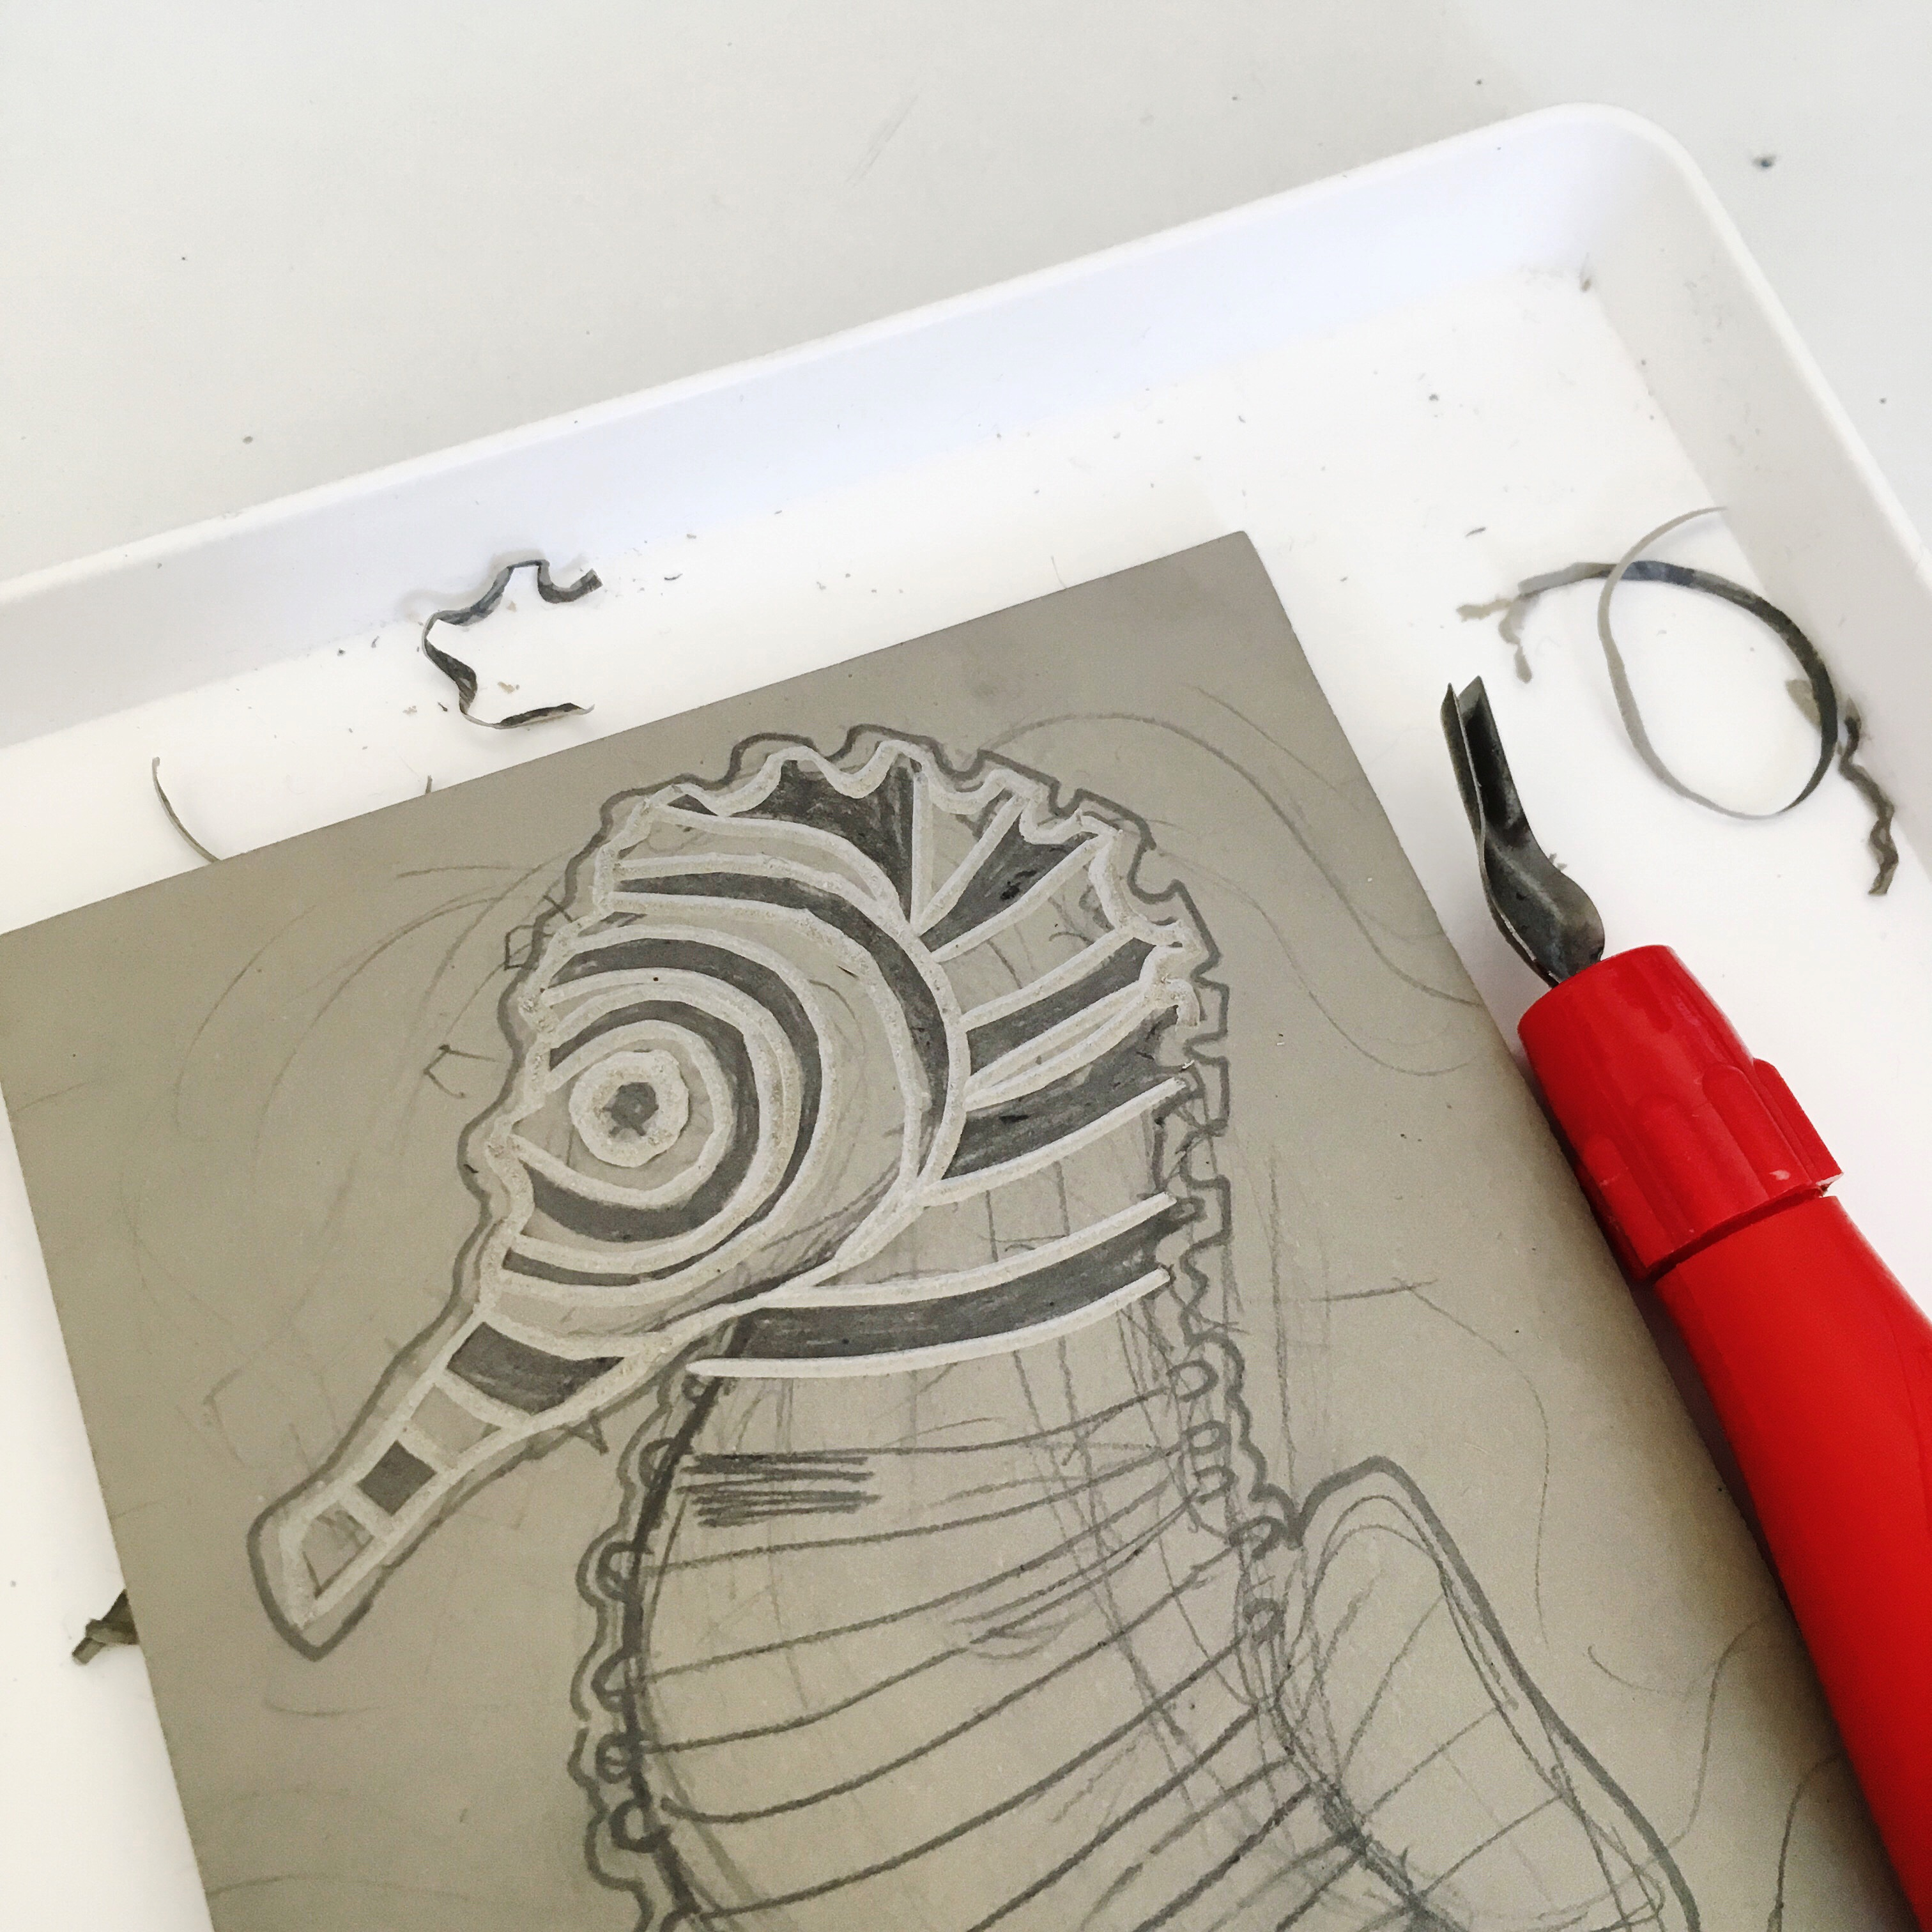 cutting image on lino plate